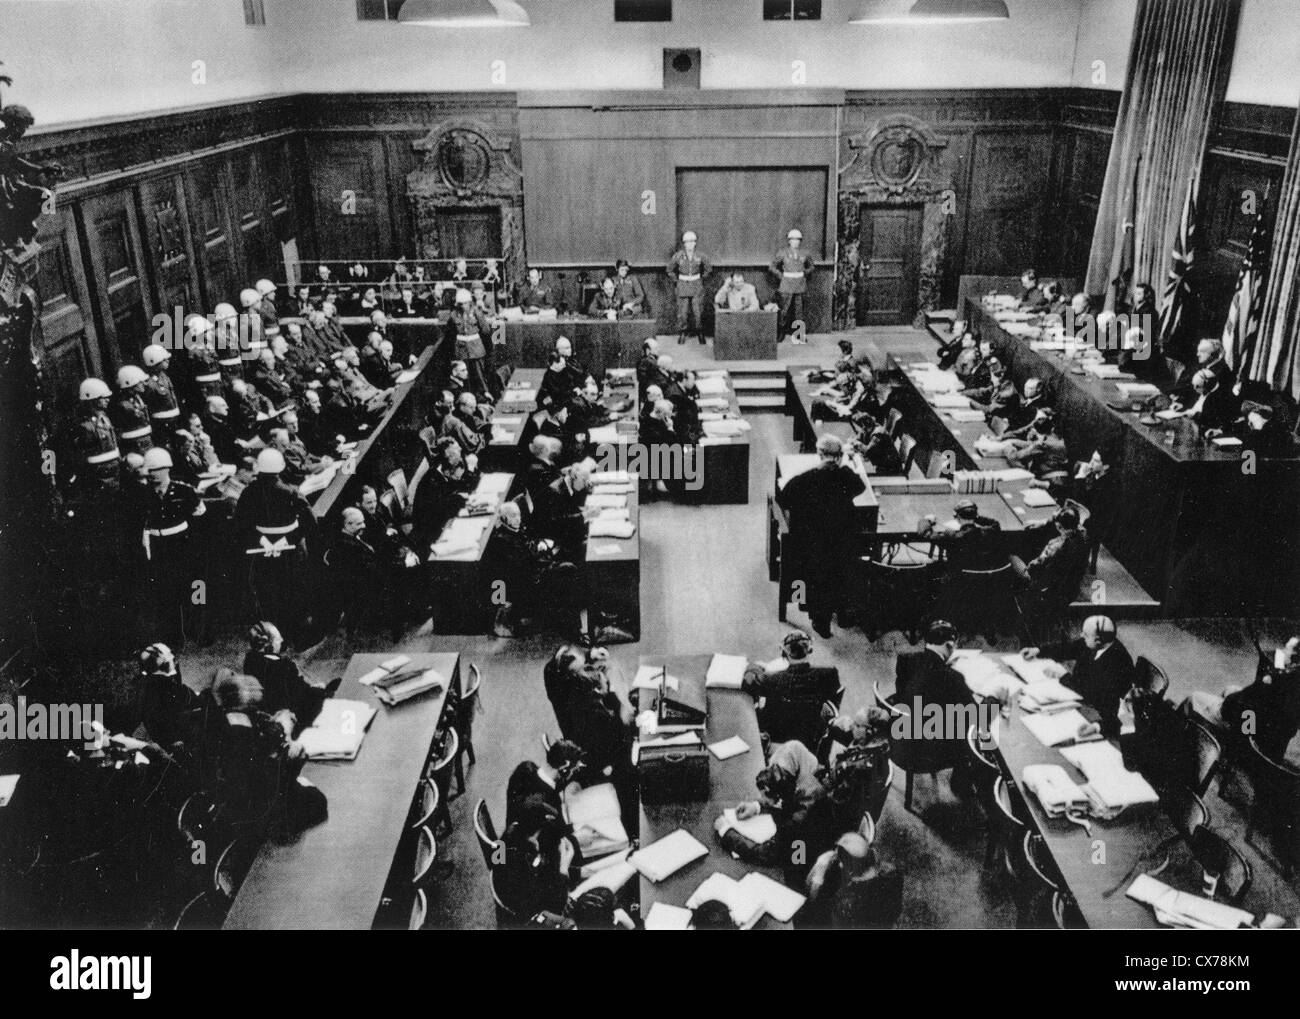 NUREMBERG TRIALS November 1945-October 1946. Courtroom 600 in the Palace of Justice with defendants at left and - Stock Image